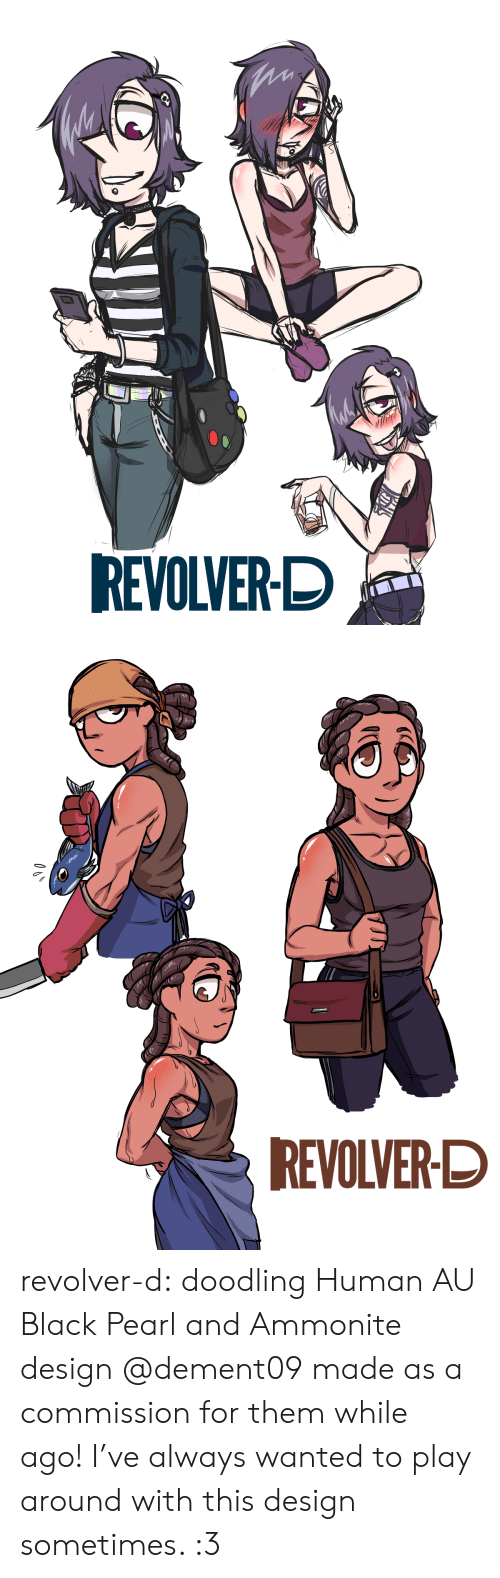 revolver: REVOLVER-D   REVOLVER-D revolver-d:    doodling Human AU Black Pearl and Ammonite design @dement09 made as a commission for them while ago! I've always wanted to play around with this design sometimes. :3